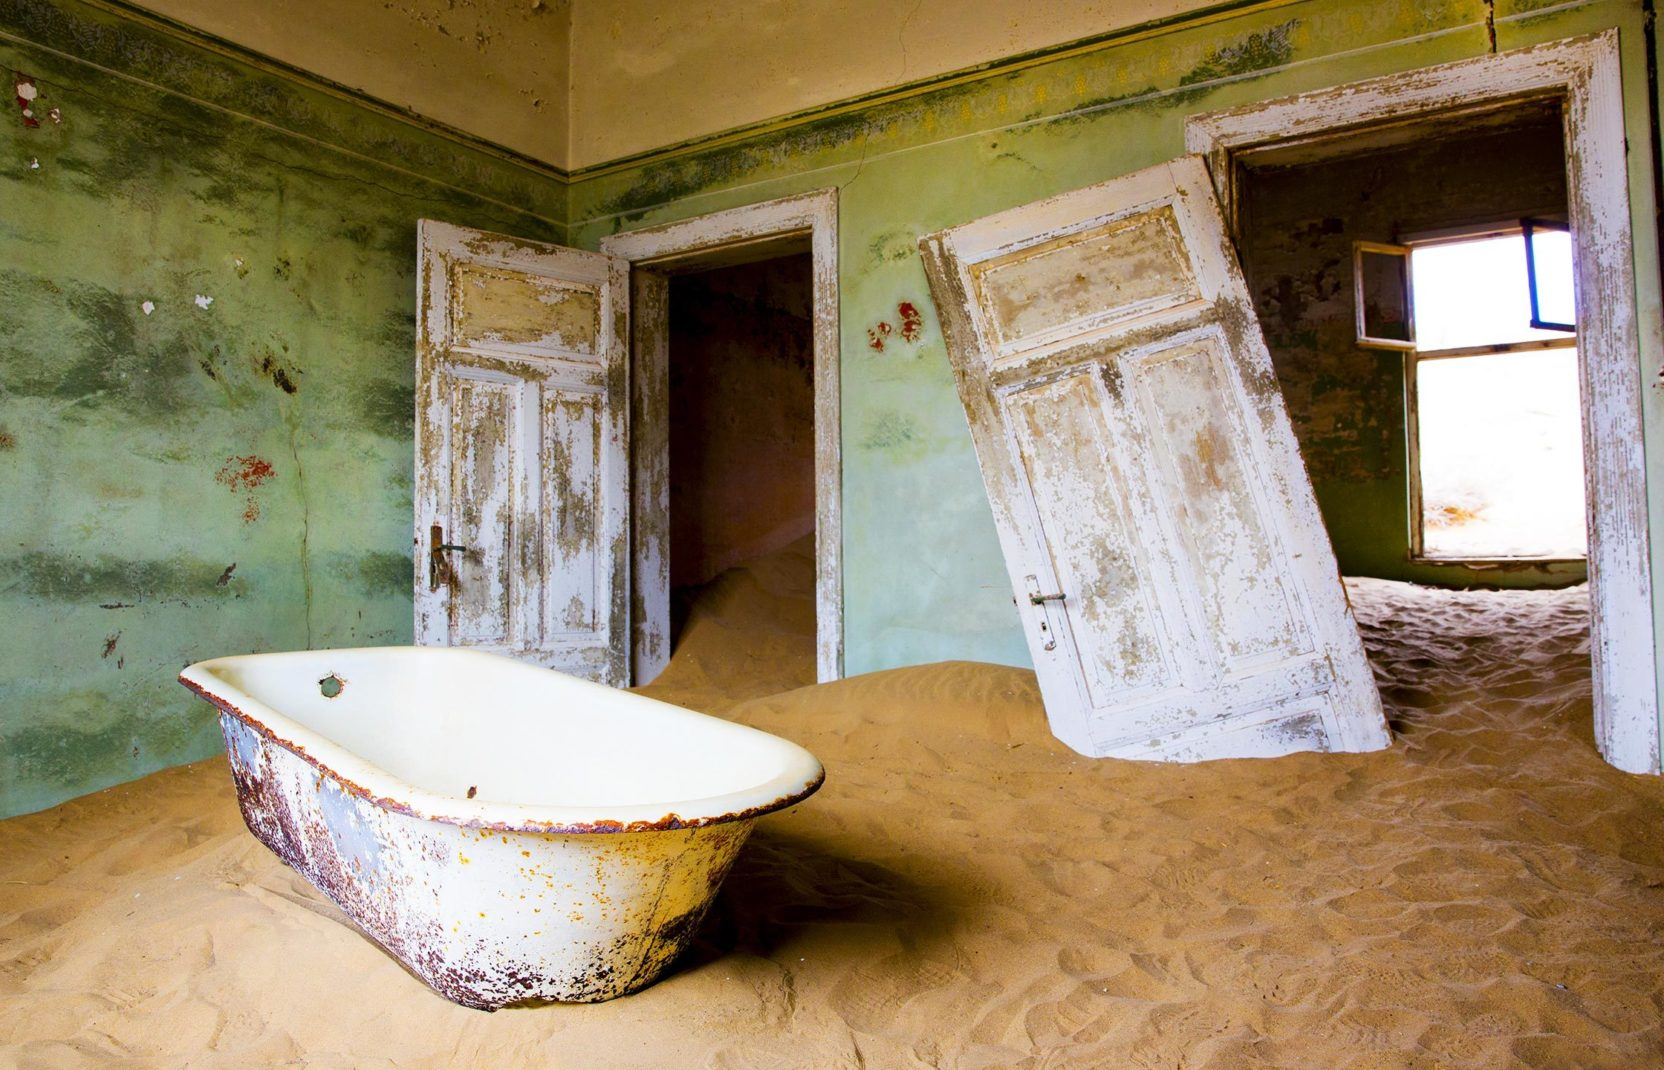 Roadtrip Namibia 06 Kolmanskop Slider 1